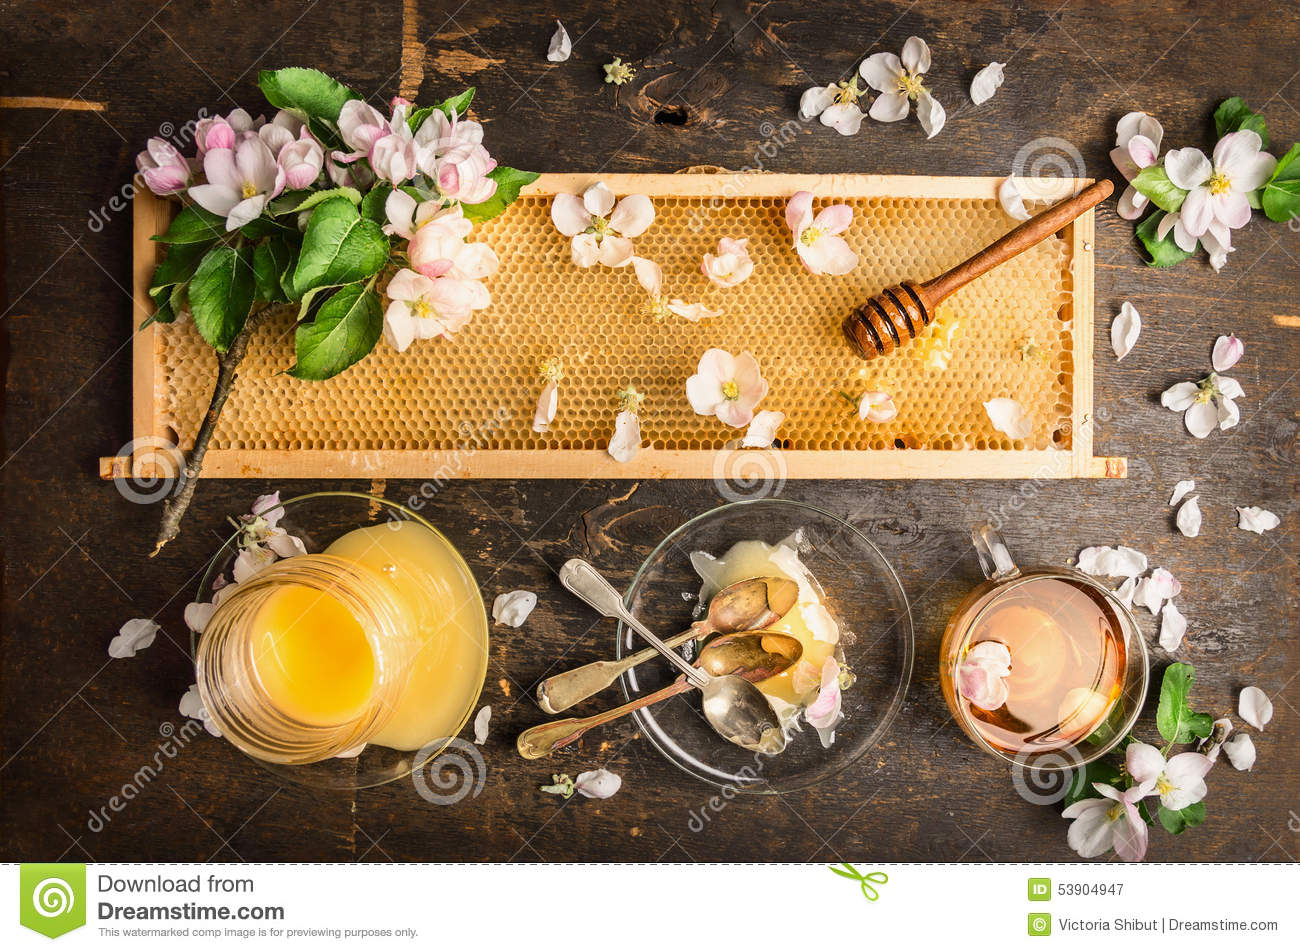 Honeycomb with wooden dipper and fresh blossom, jar with honey and plate with vintage spoons